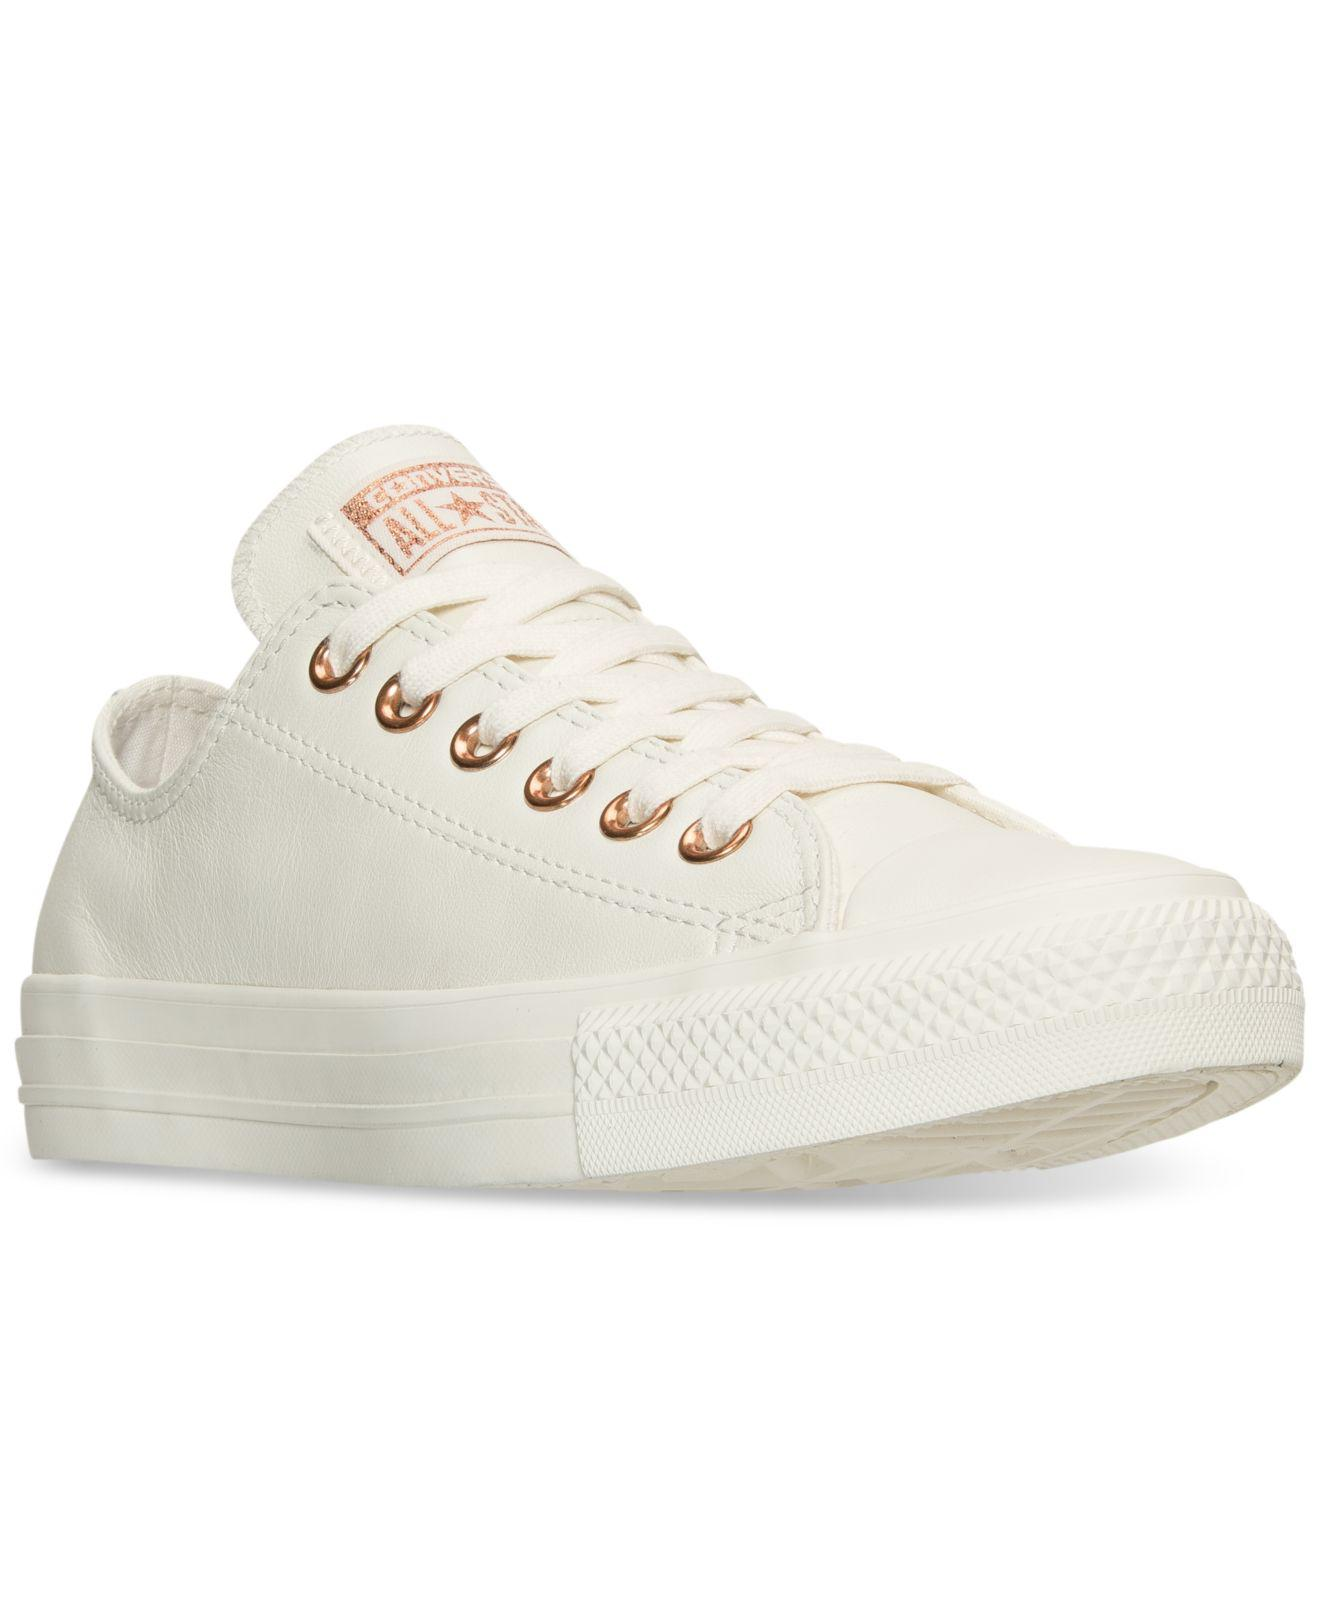 81338bb02d2b Lyst - Converse Women s Chuck Taylor Pastel Leather Ox Casual ...